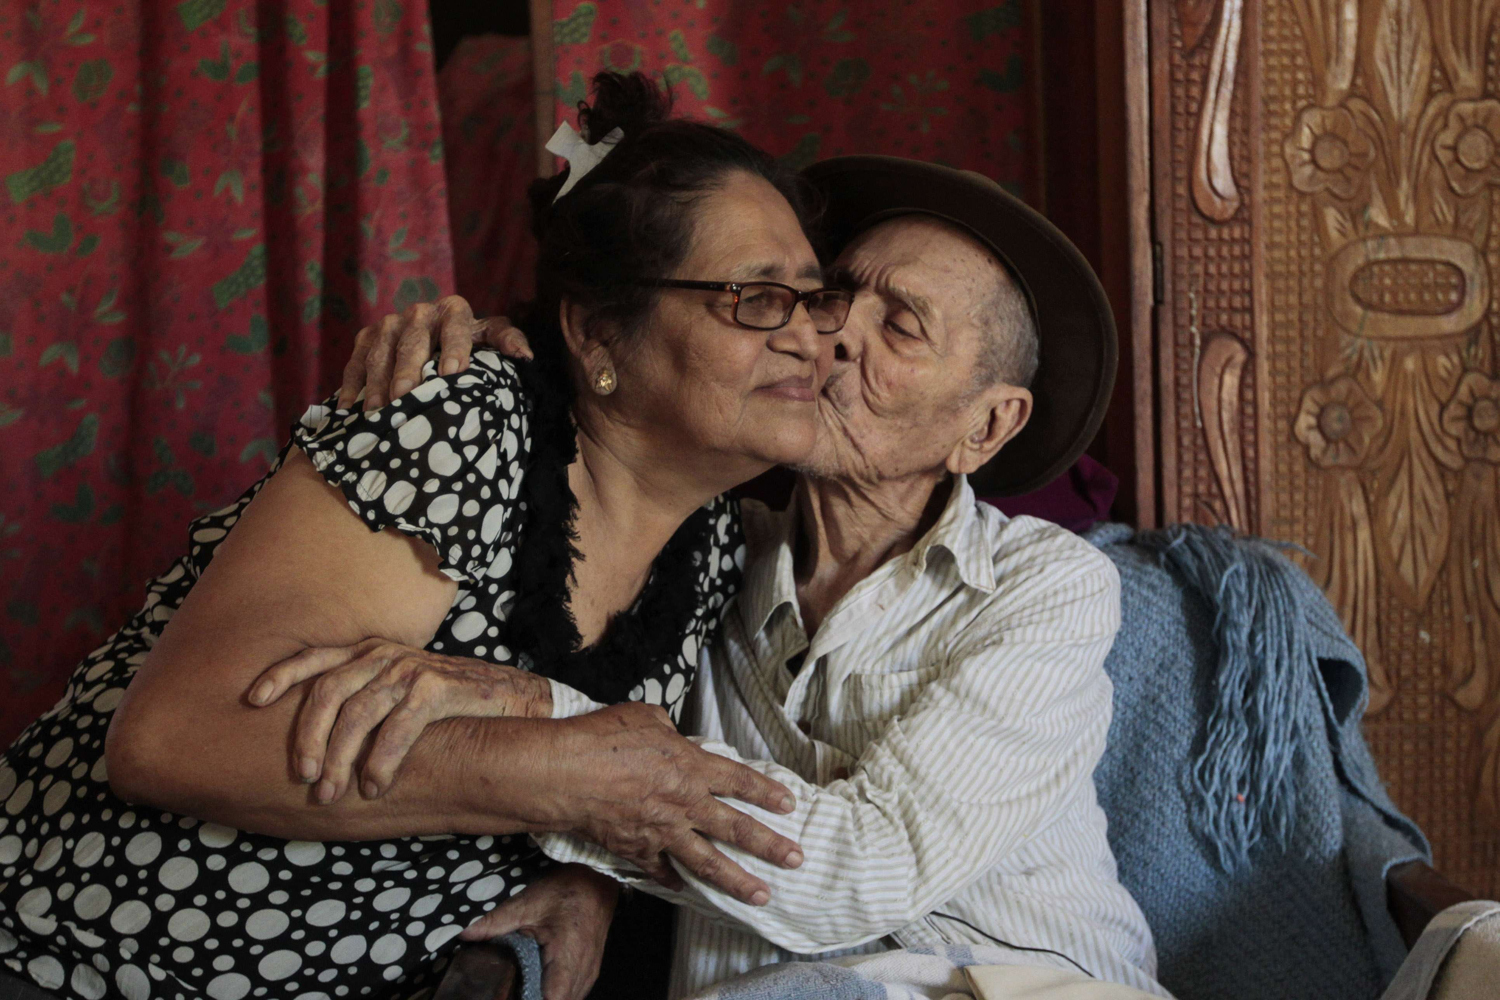 Apr. 8, 2014. Hector Gaitan, 110, kisses his wife Nora Campo inside his home, at an abandoned station of the Nicaraguan Railway Company, the country's defunct railway, located on the outskirts of Managua.